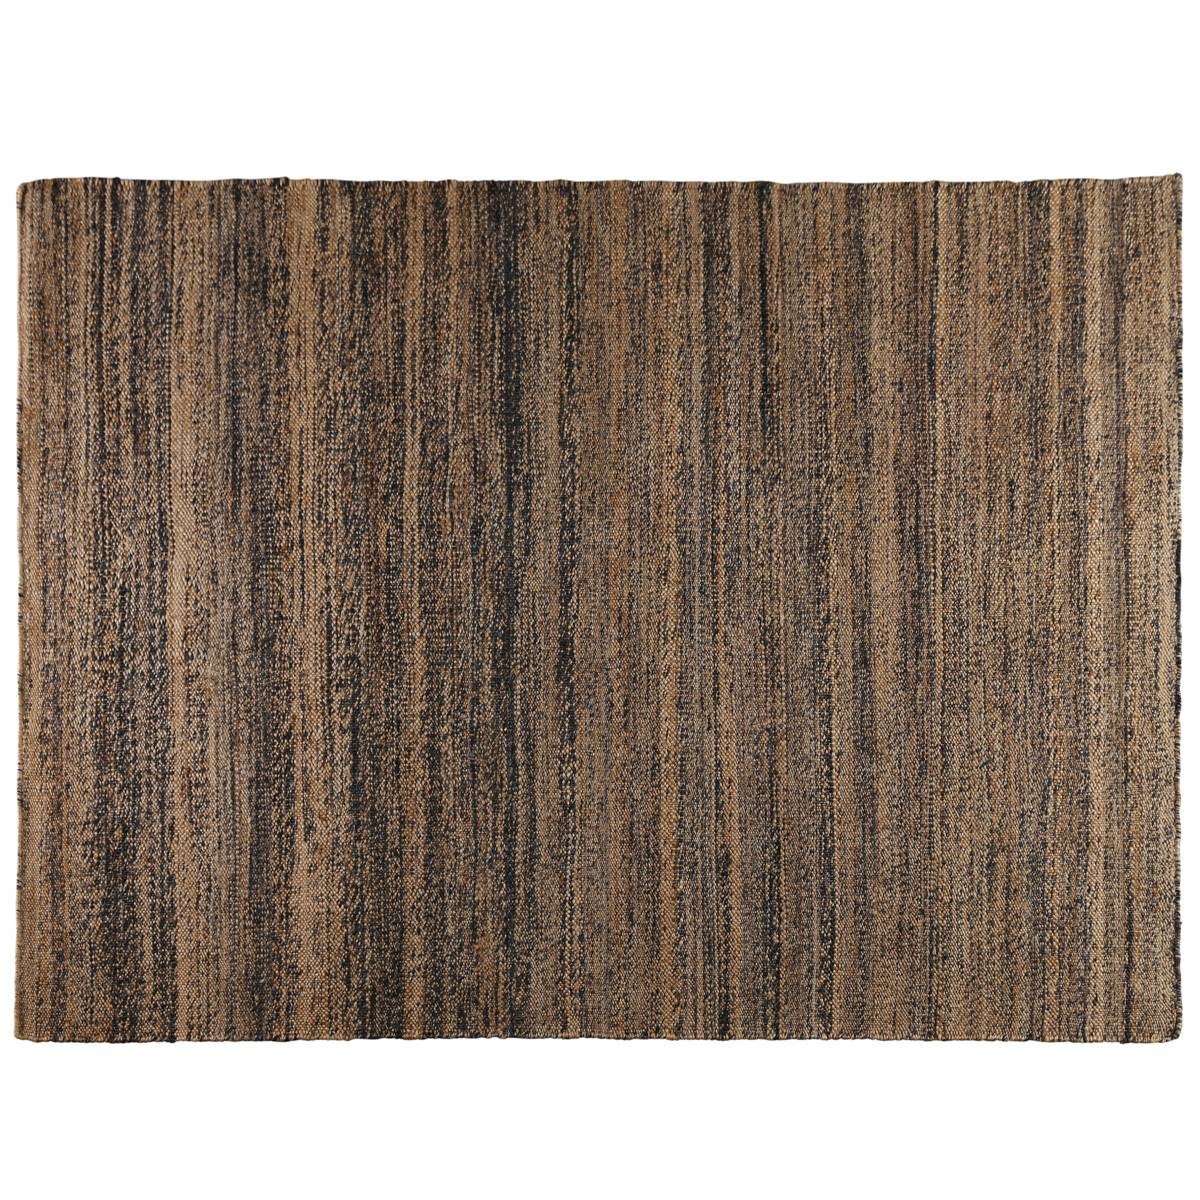 "Zago ""Tapis en chanvre naturel 200 cm Stripes - ZAGO"""